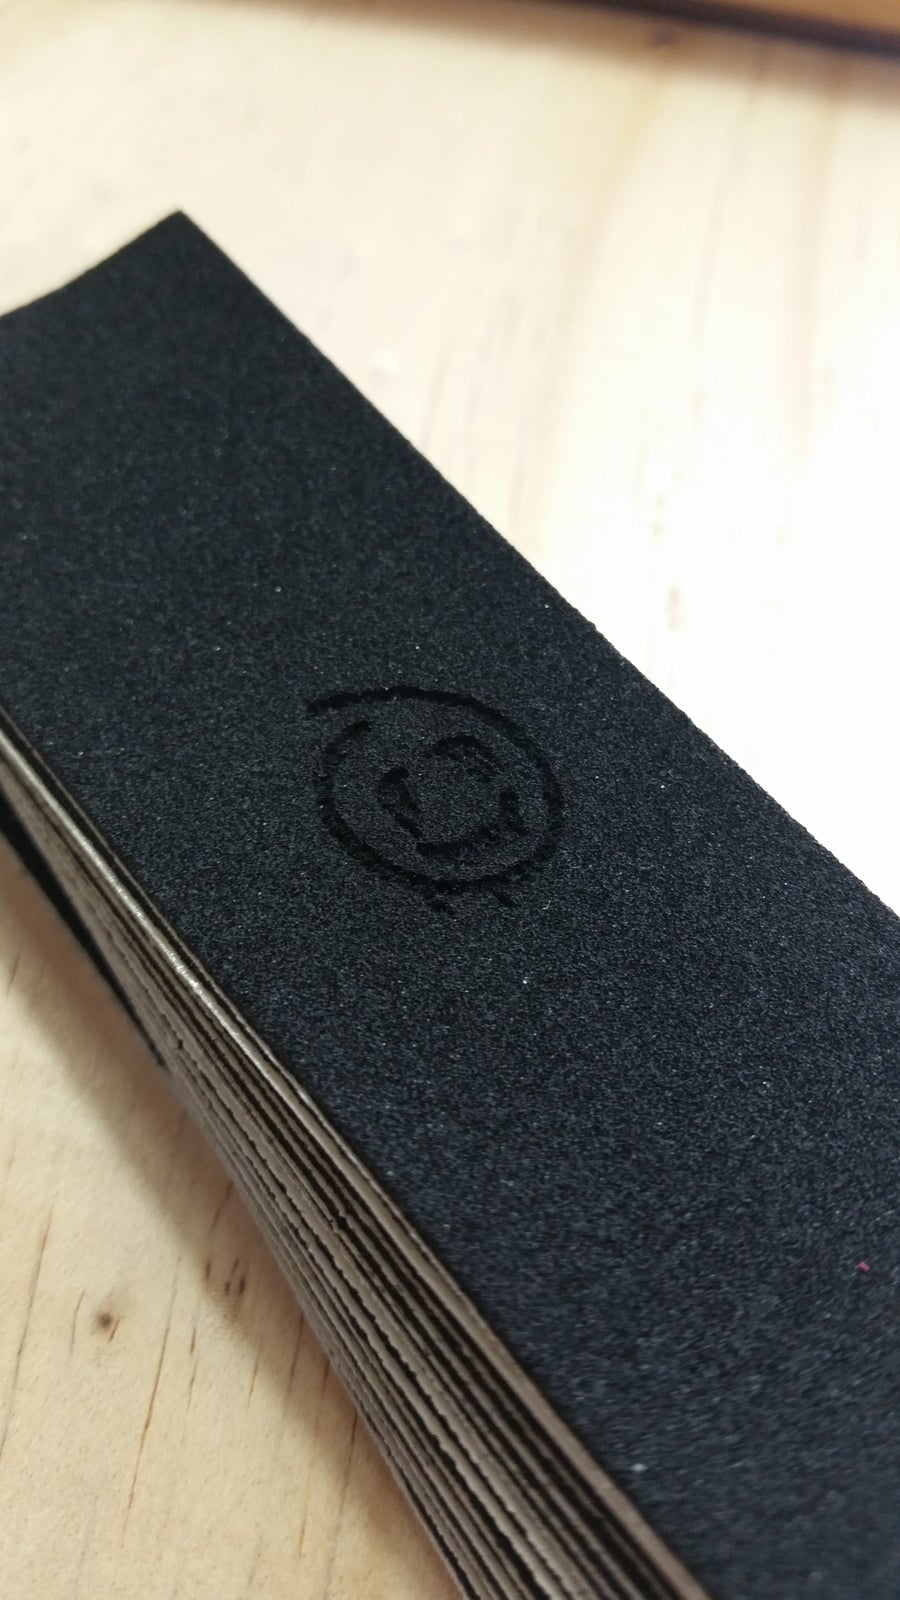 Image of Dislocation laser engraved griptape